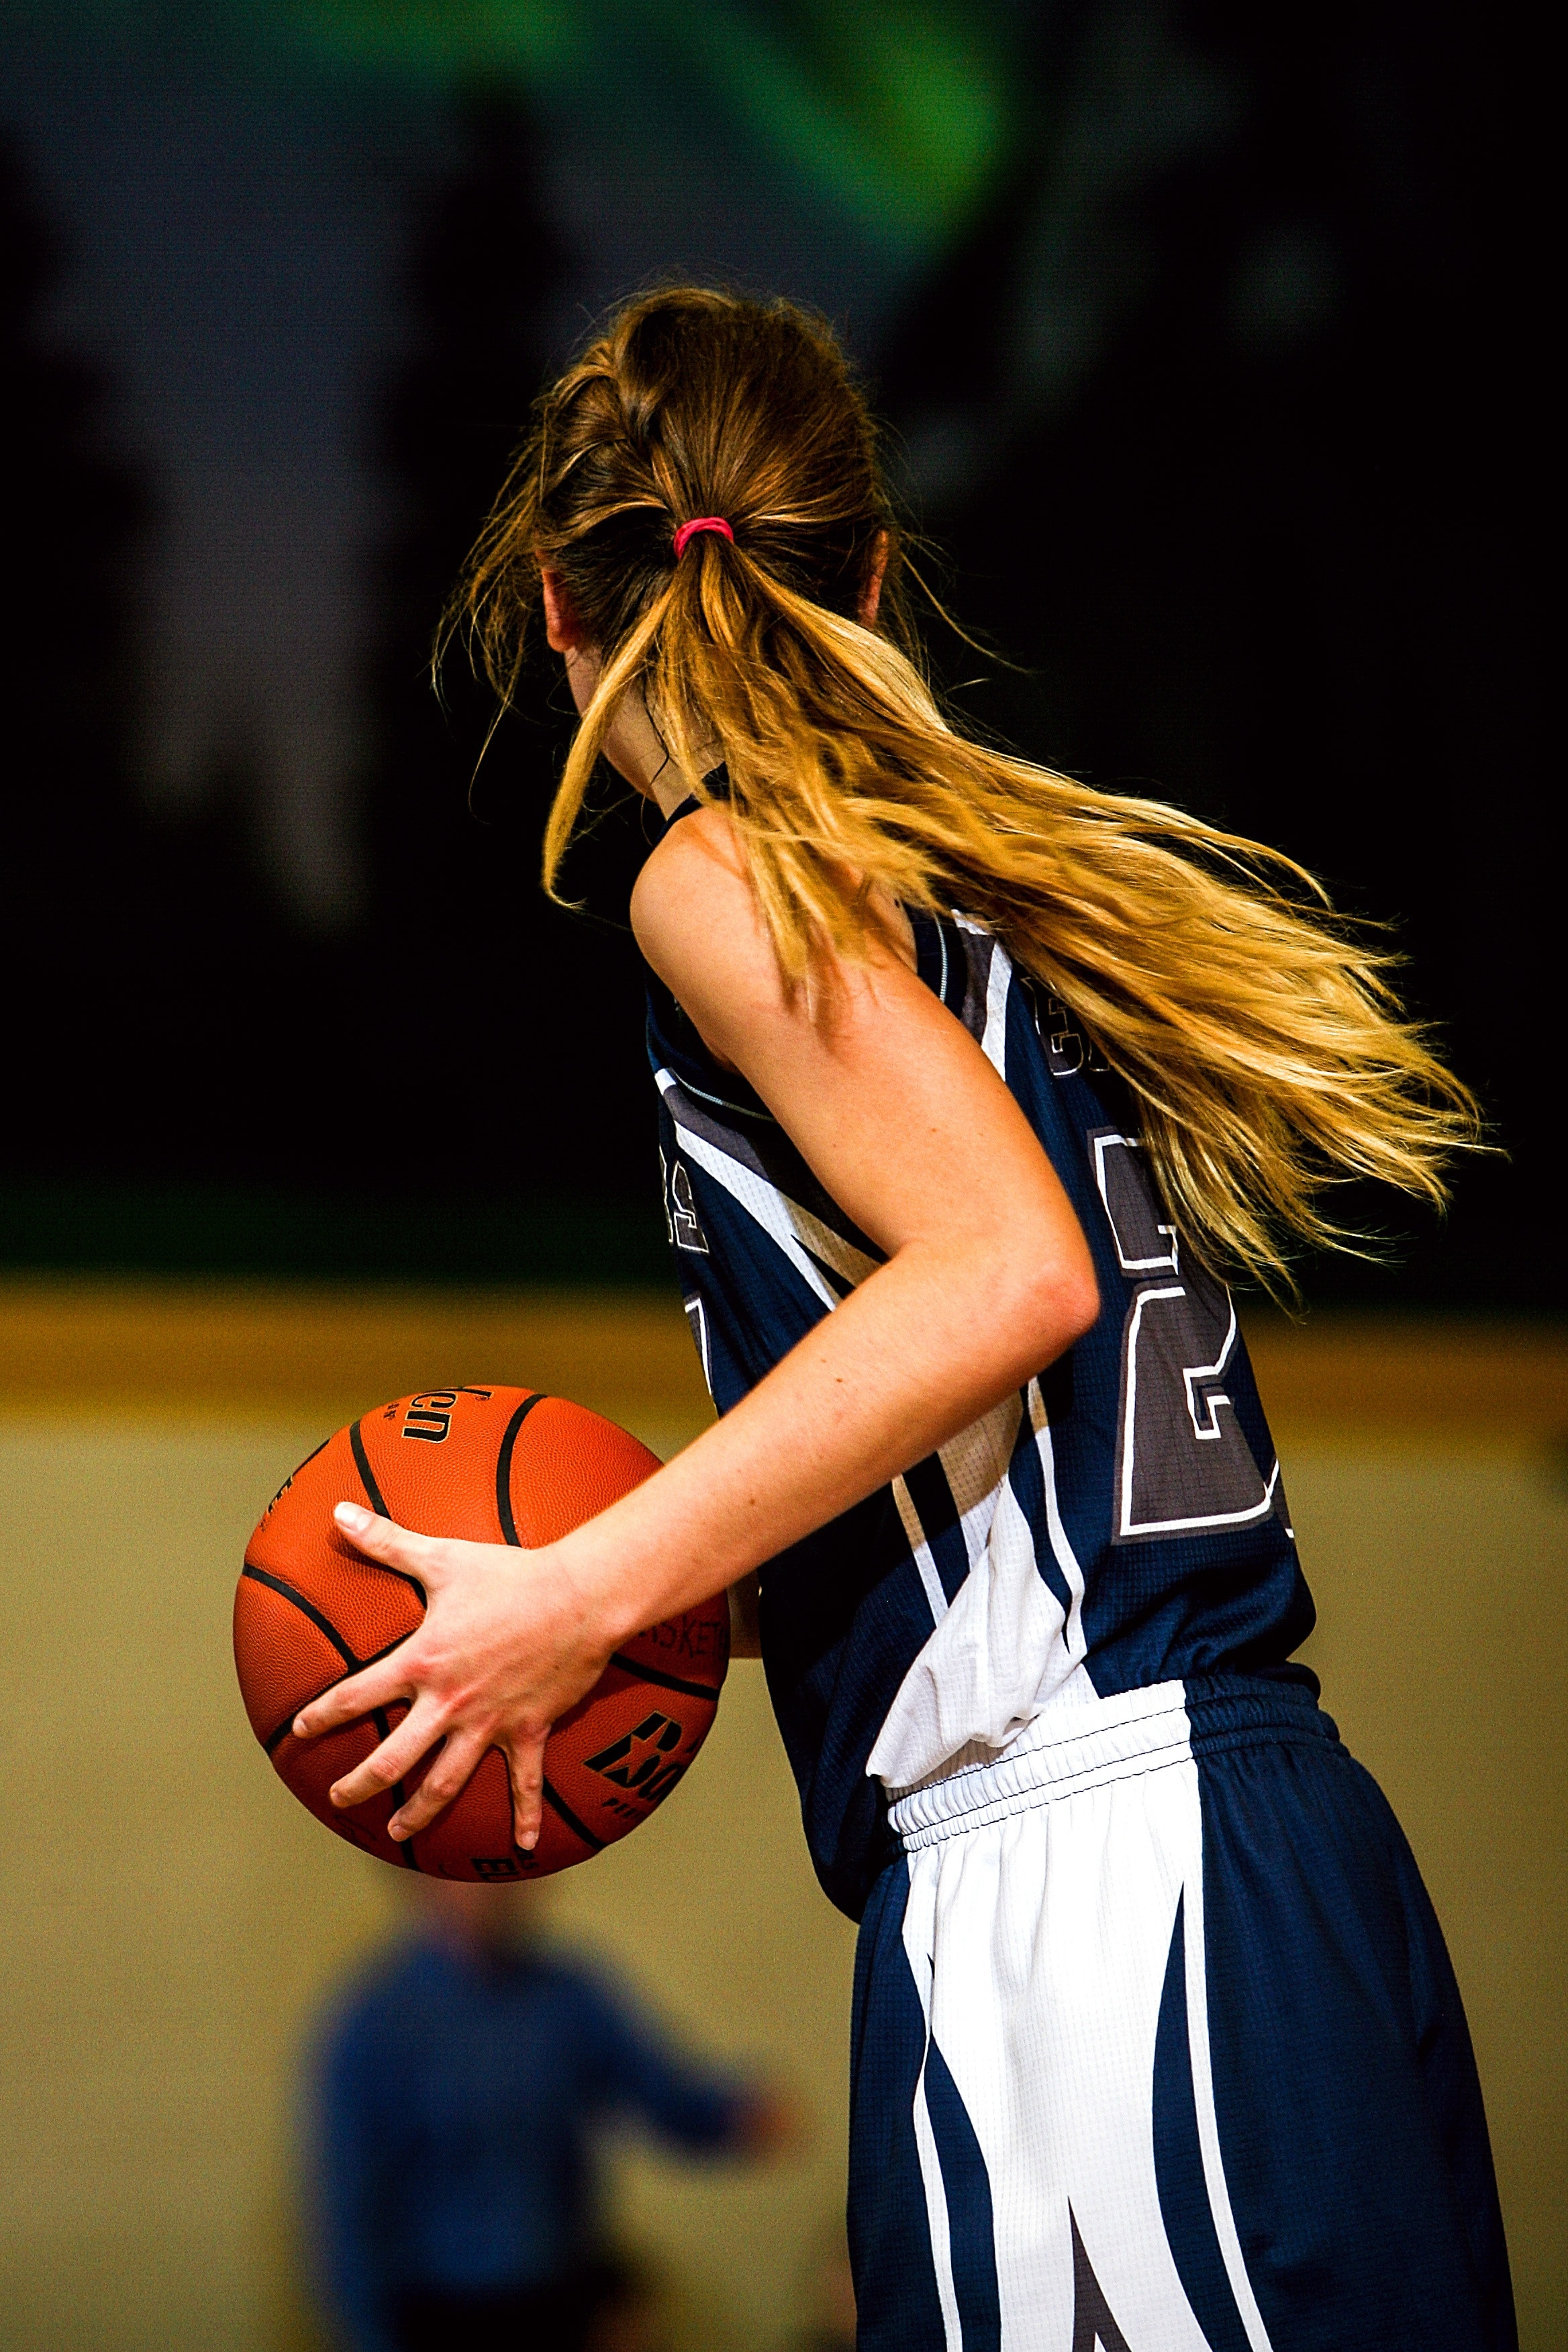 Woman in blue and white basketball jersey holding brown basketball photo